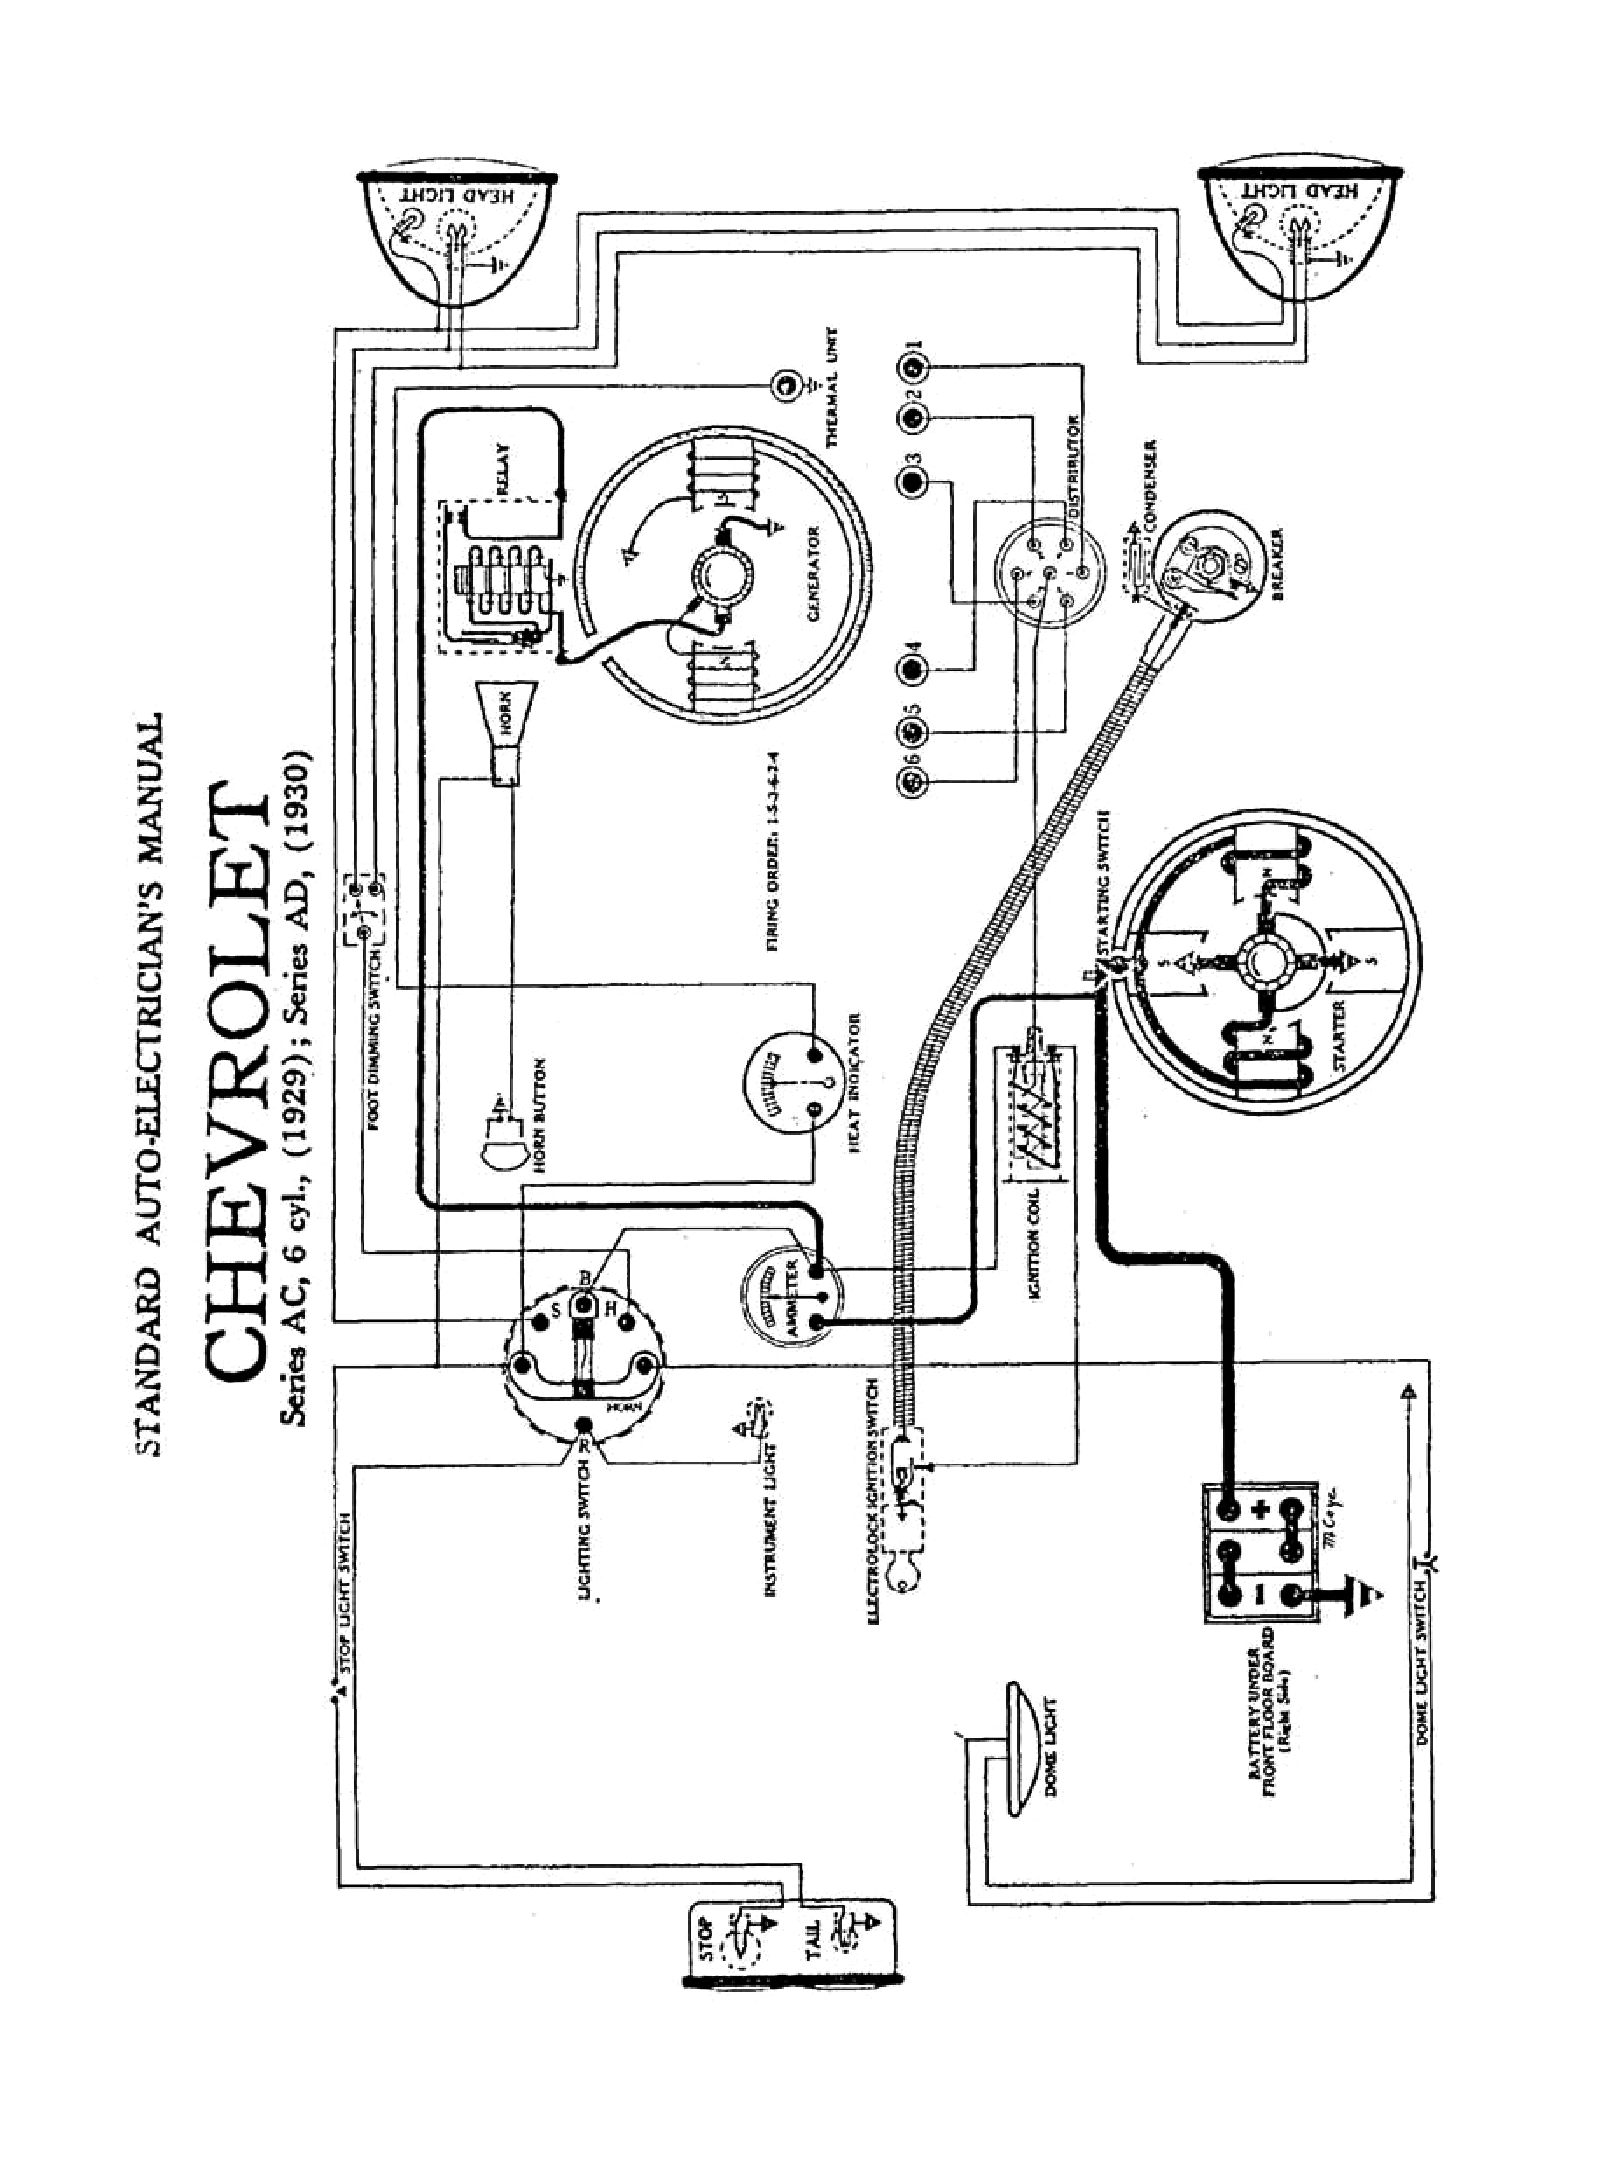 2930wiring chevy wiring diagrams modem wiring diagram at mifinder.co